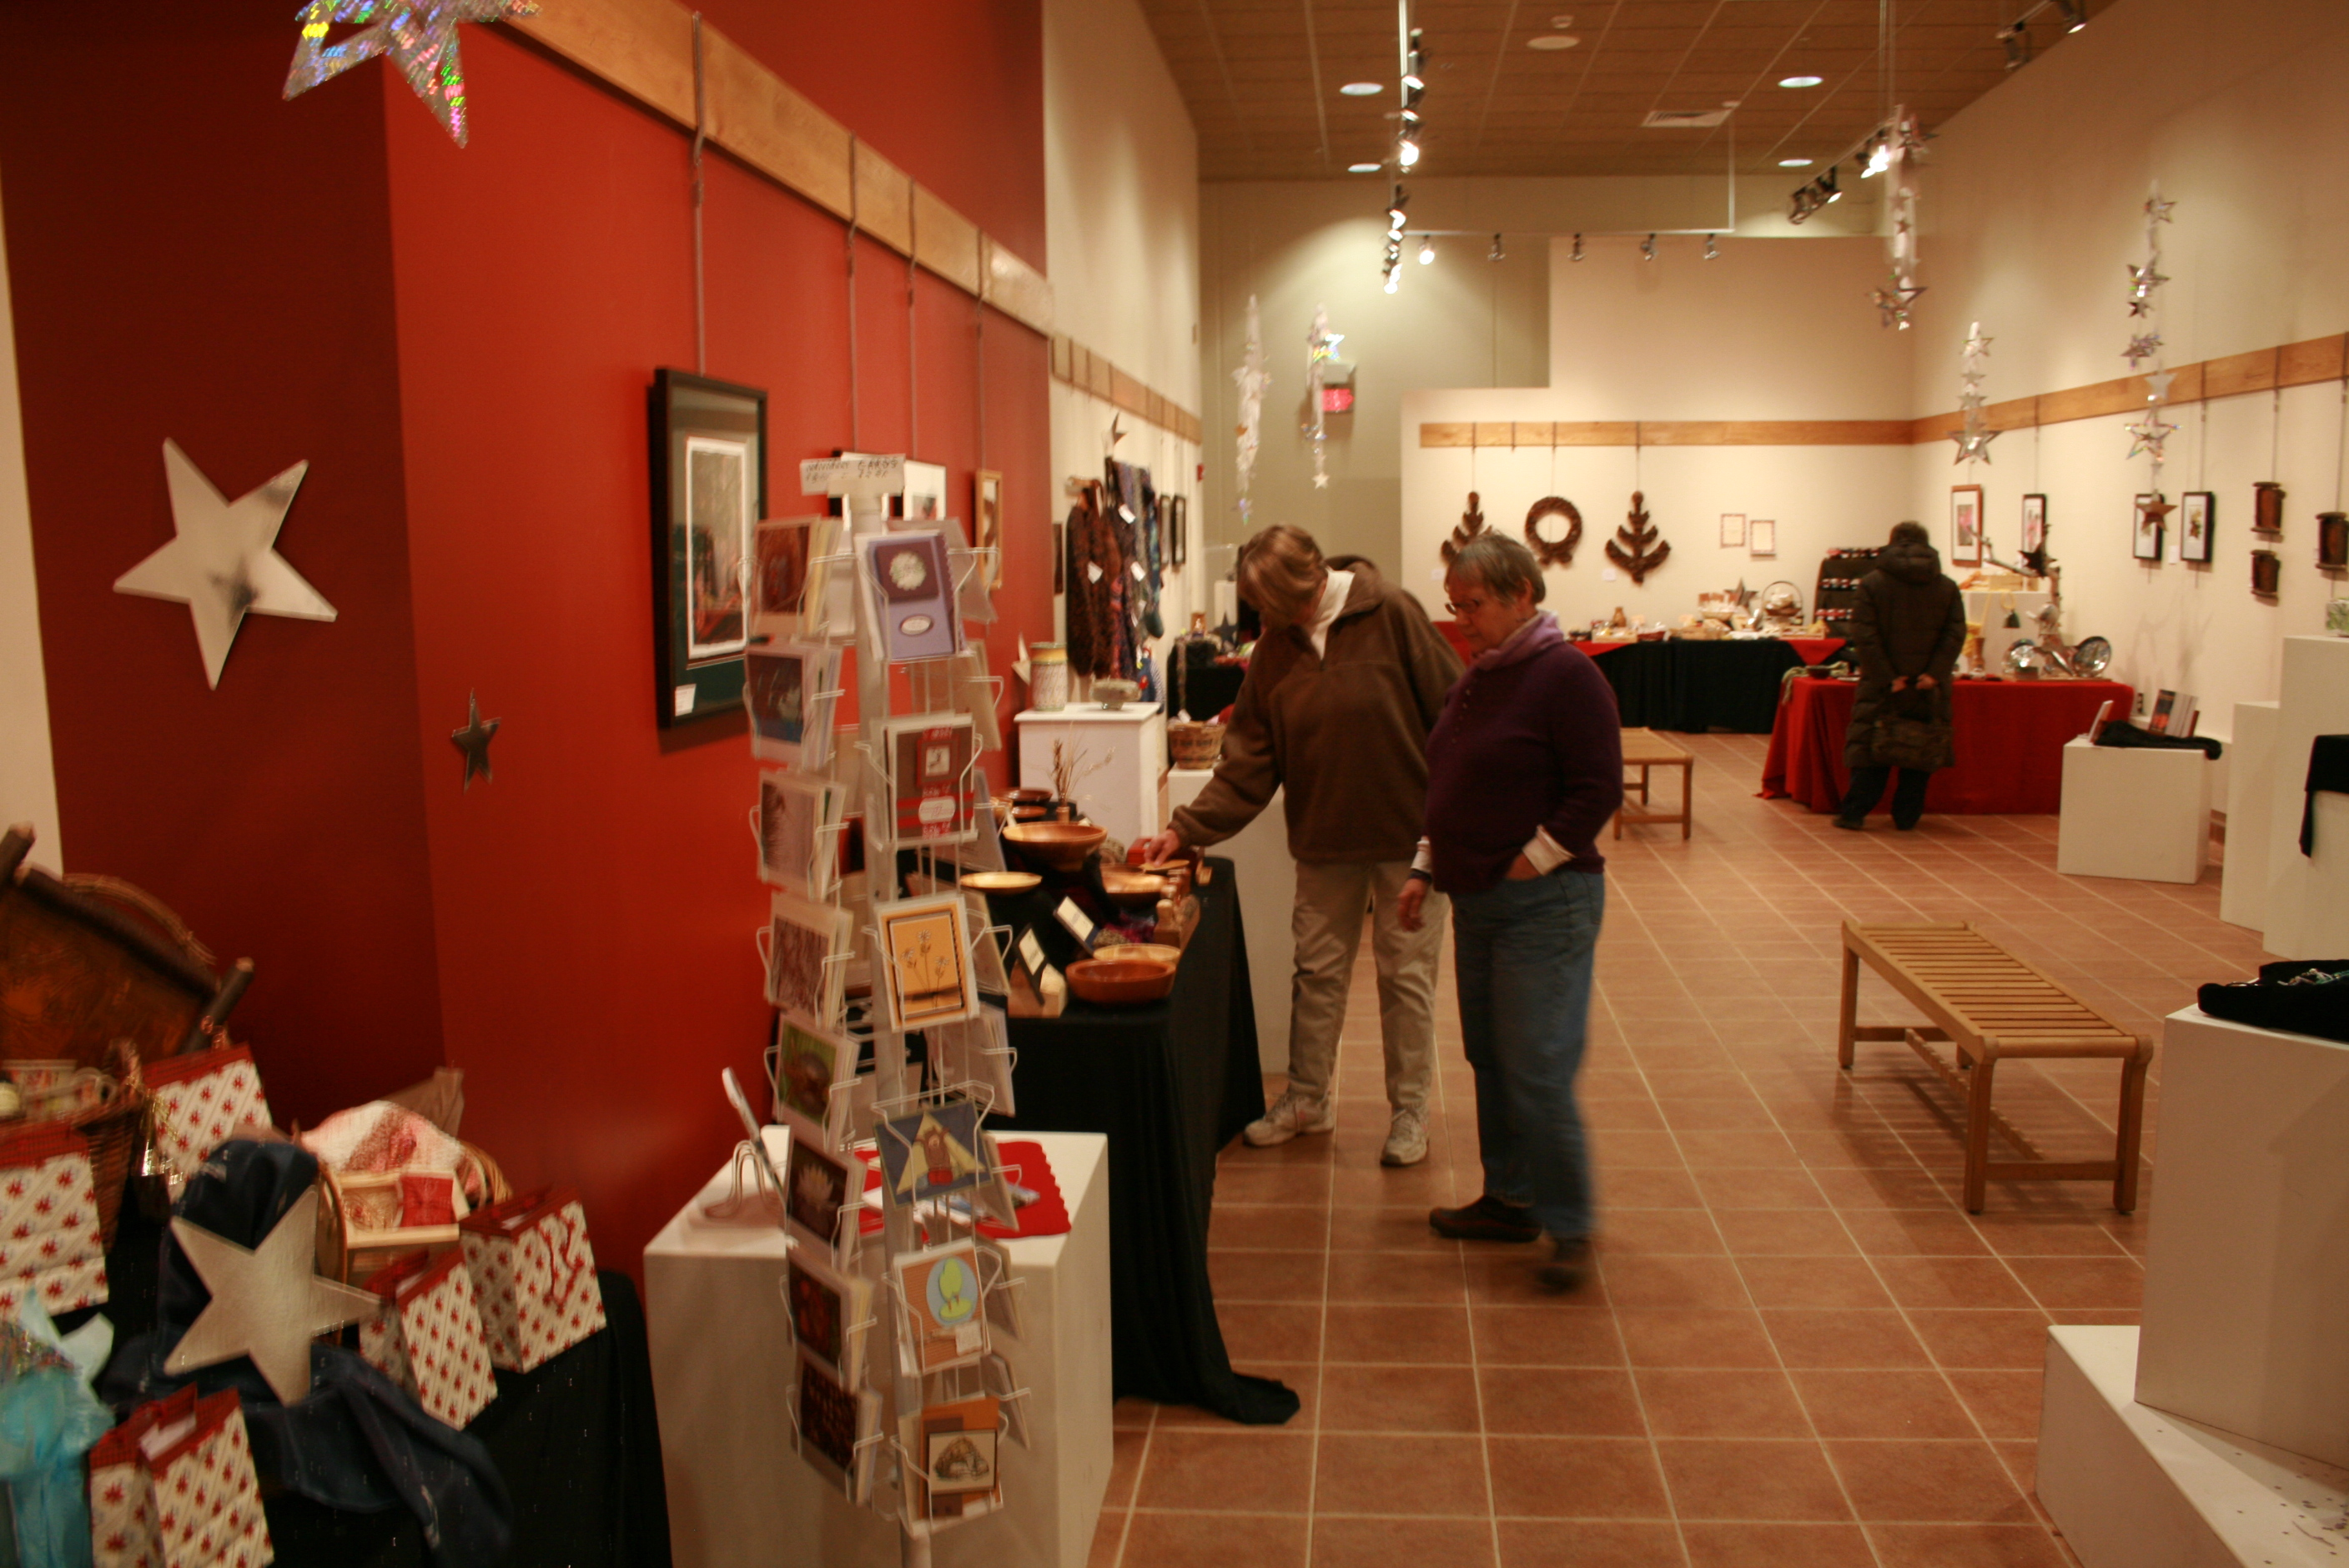 Edge Center in Bigfork offers holiday wares, concert